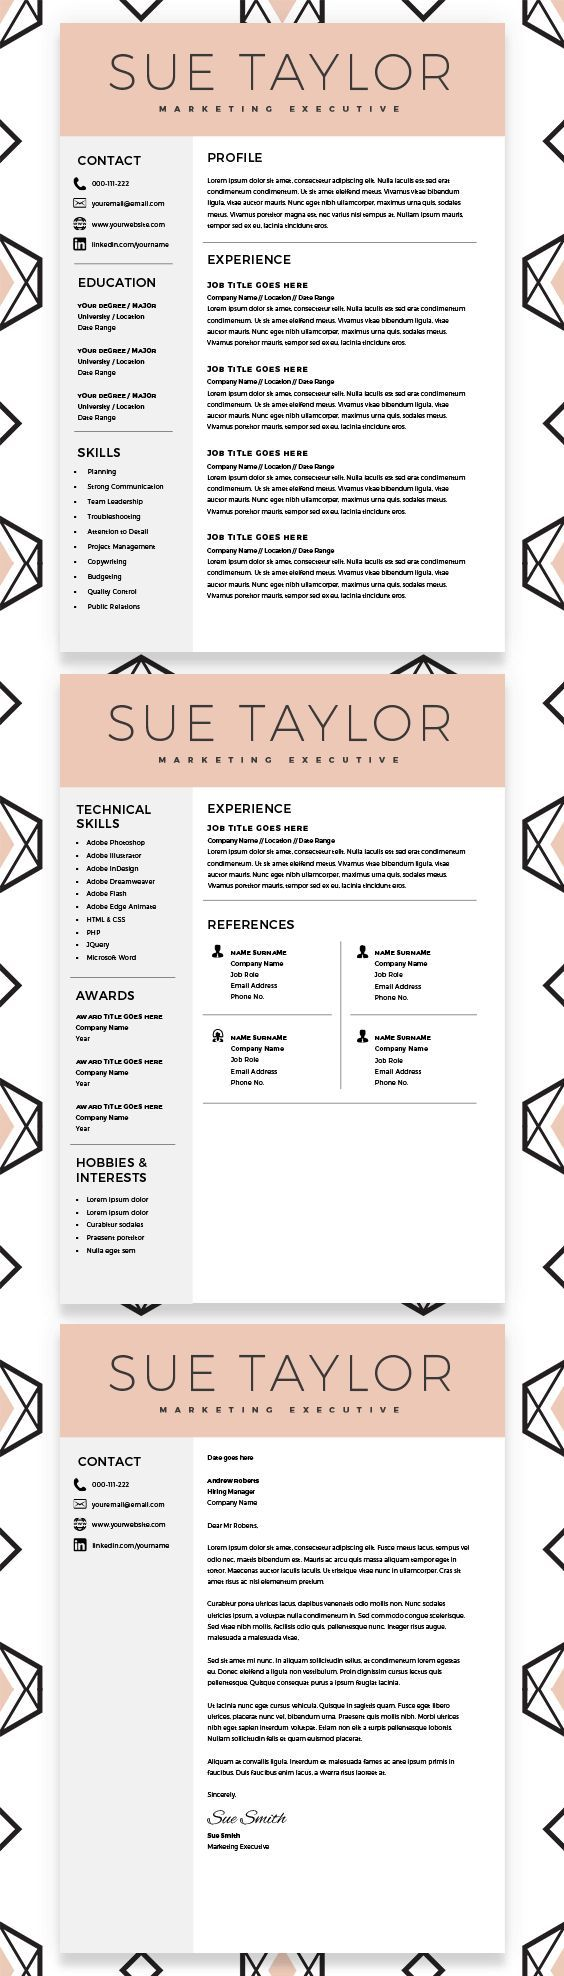 What Does A Professional Resume Look Like Marketing Executive Resume Modern Resume Template Cv Template .